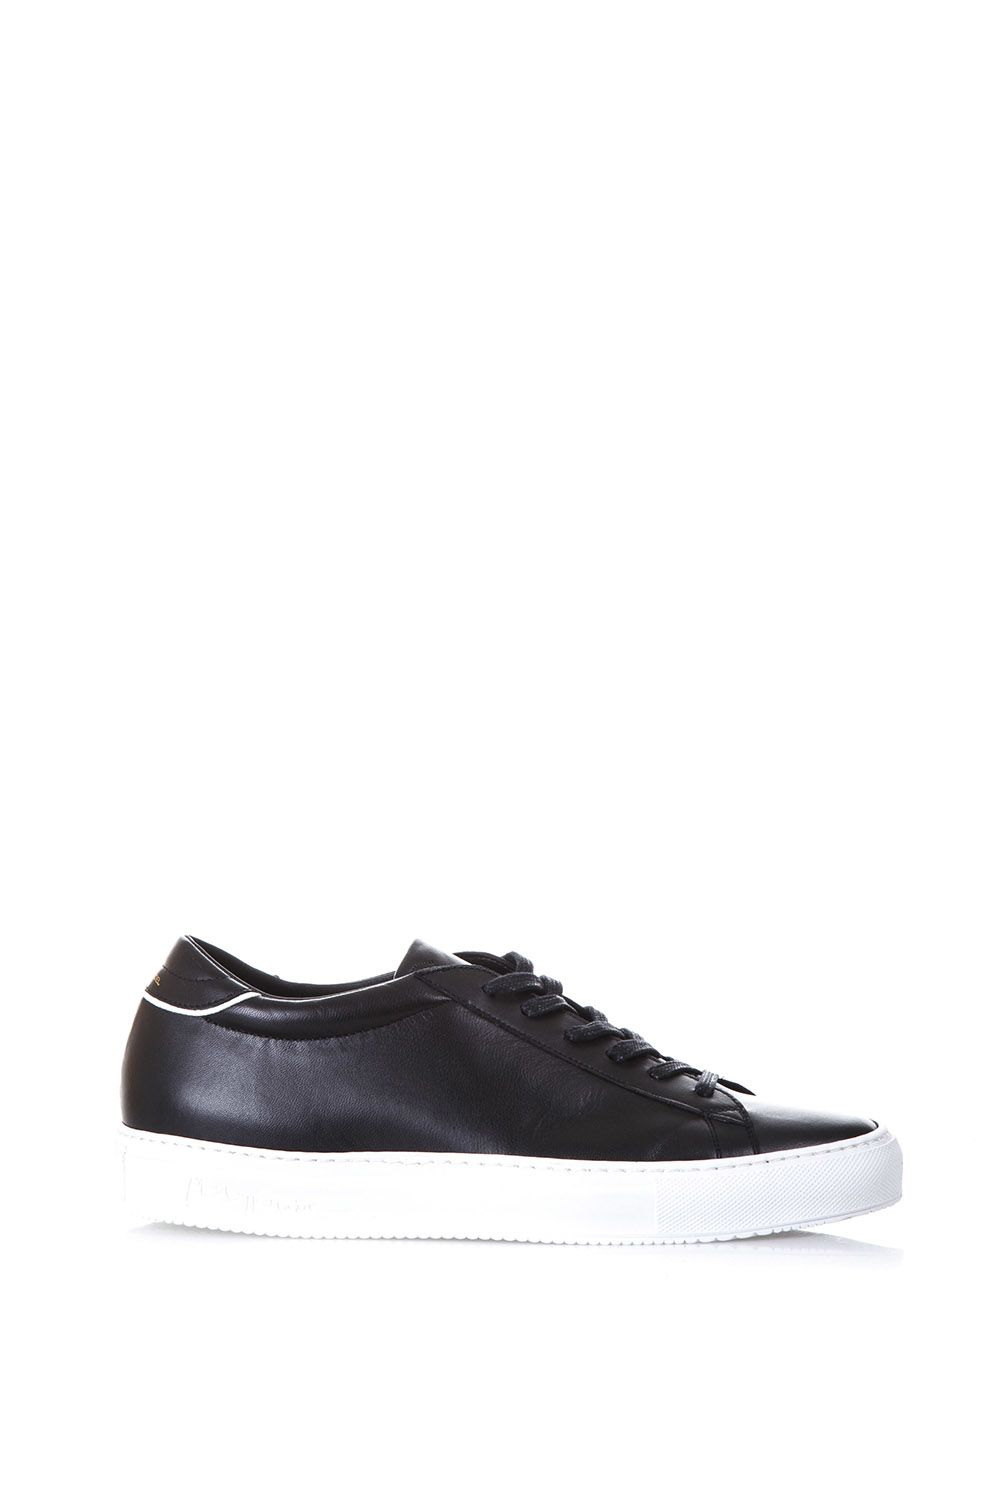 Philippe Model Avenir Brushed Leather Low-top Sneakers